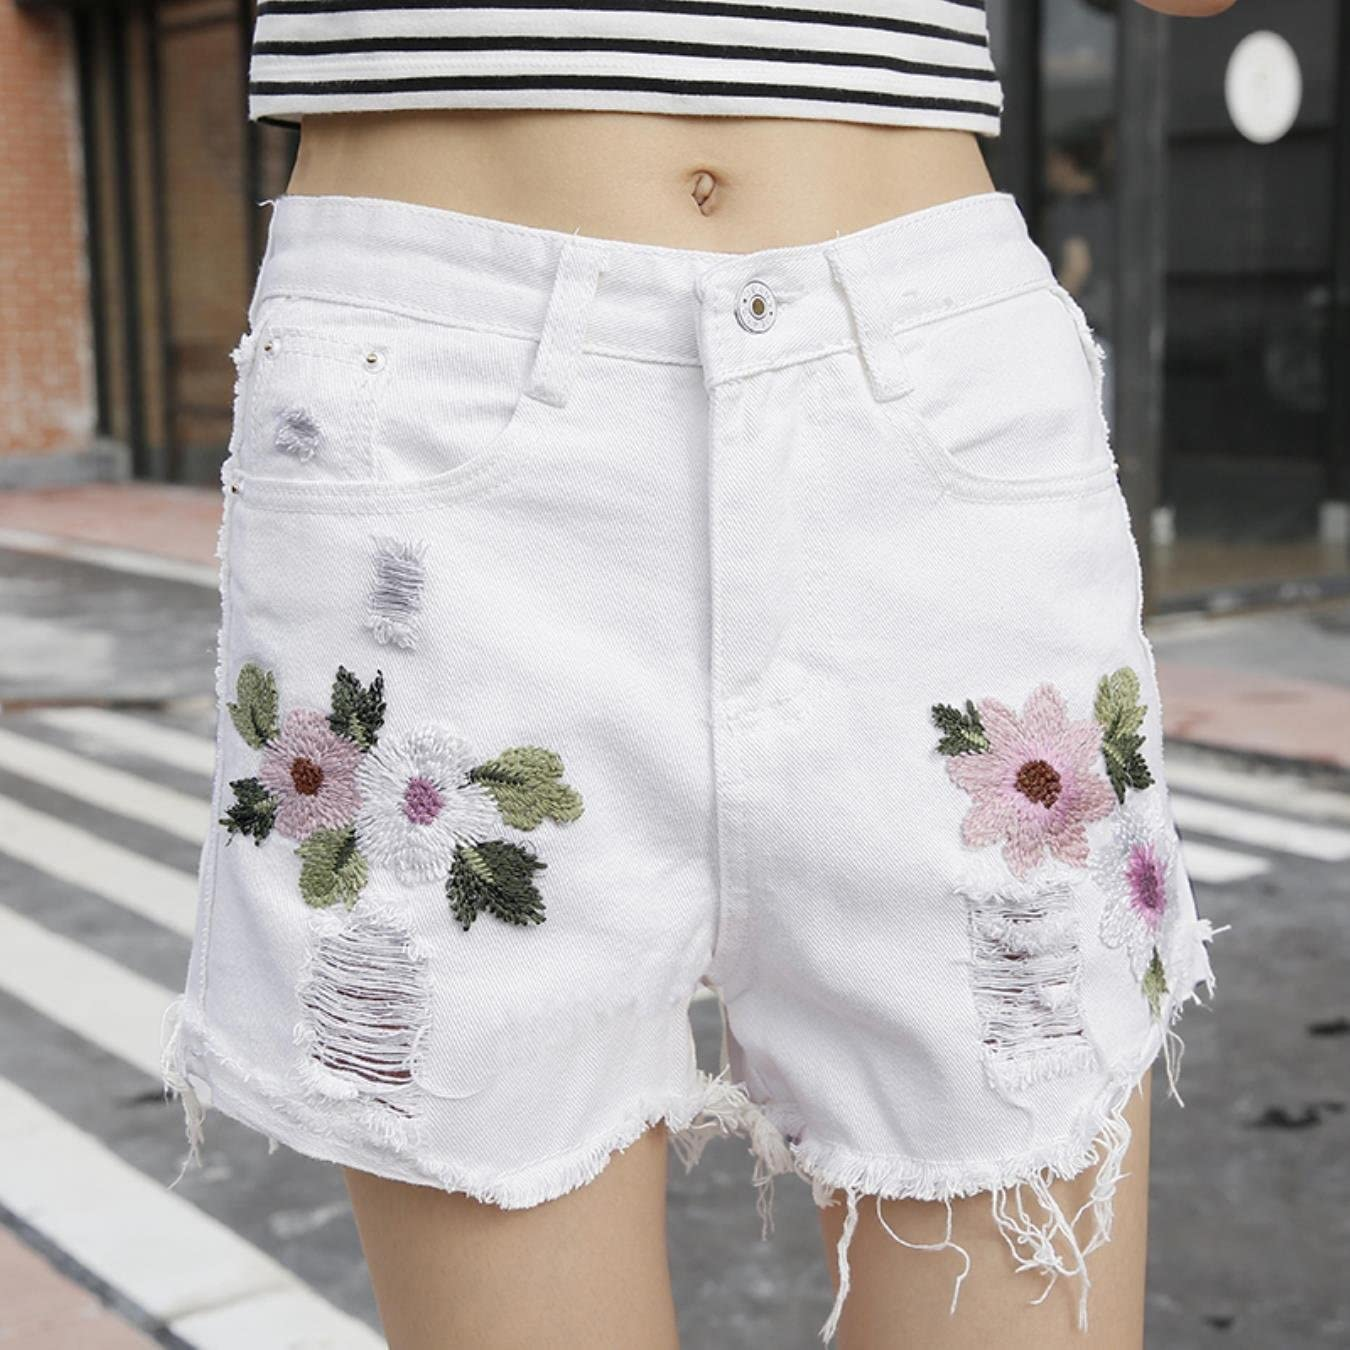 HELLBENG Women Daisy Floral Embroidery Hollow Out Vintage Washed Tassel Jeans Denim Shorts